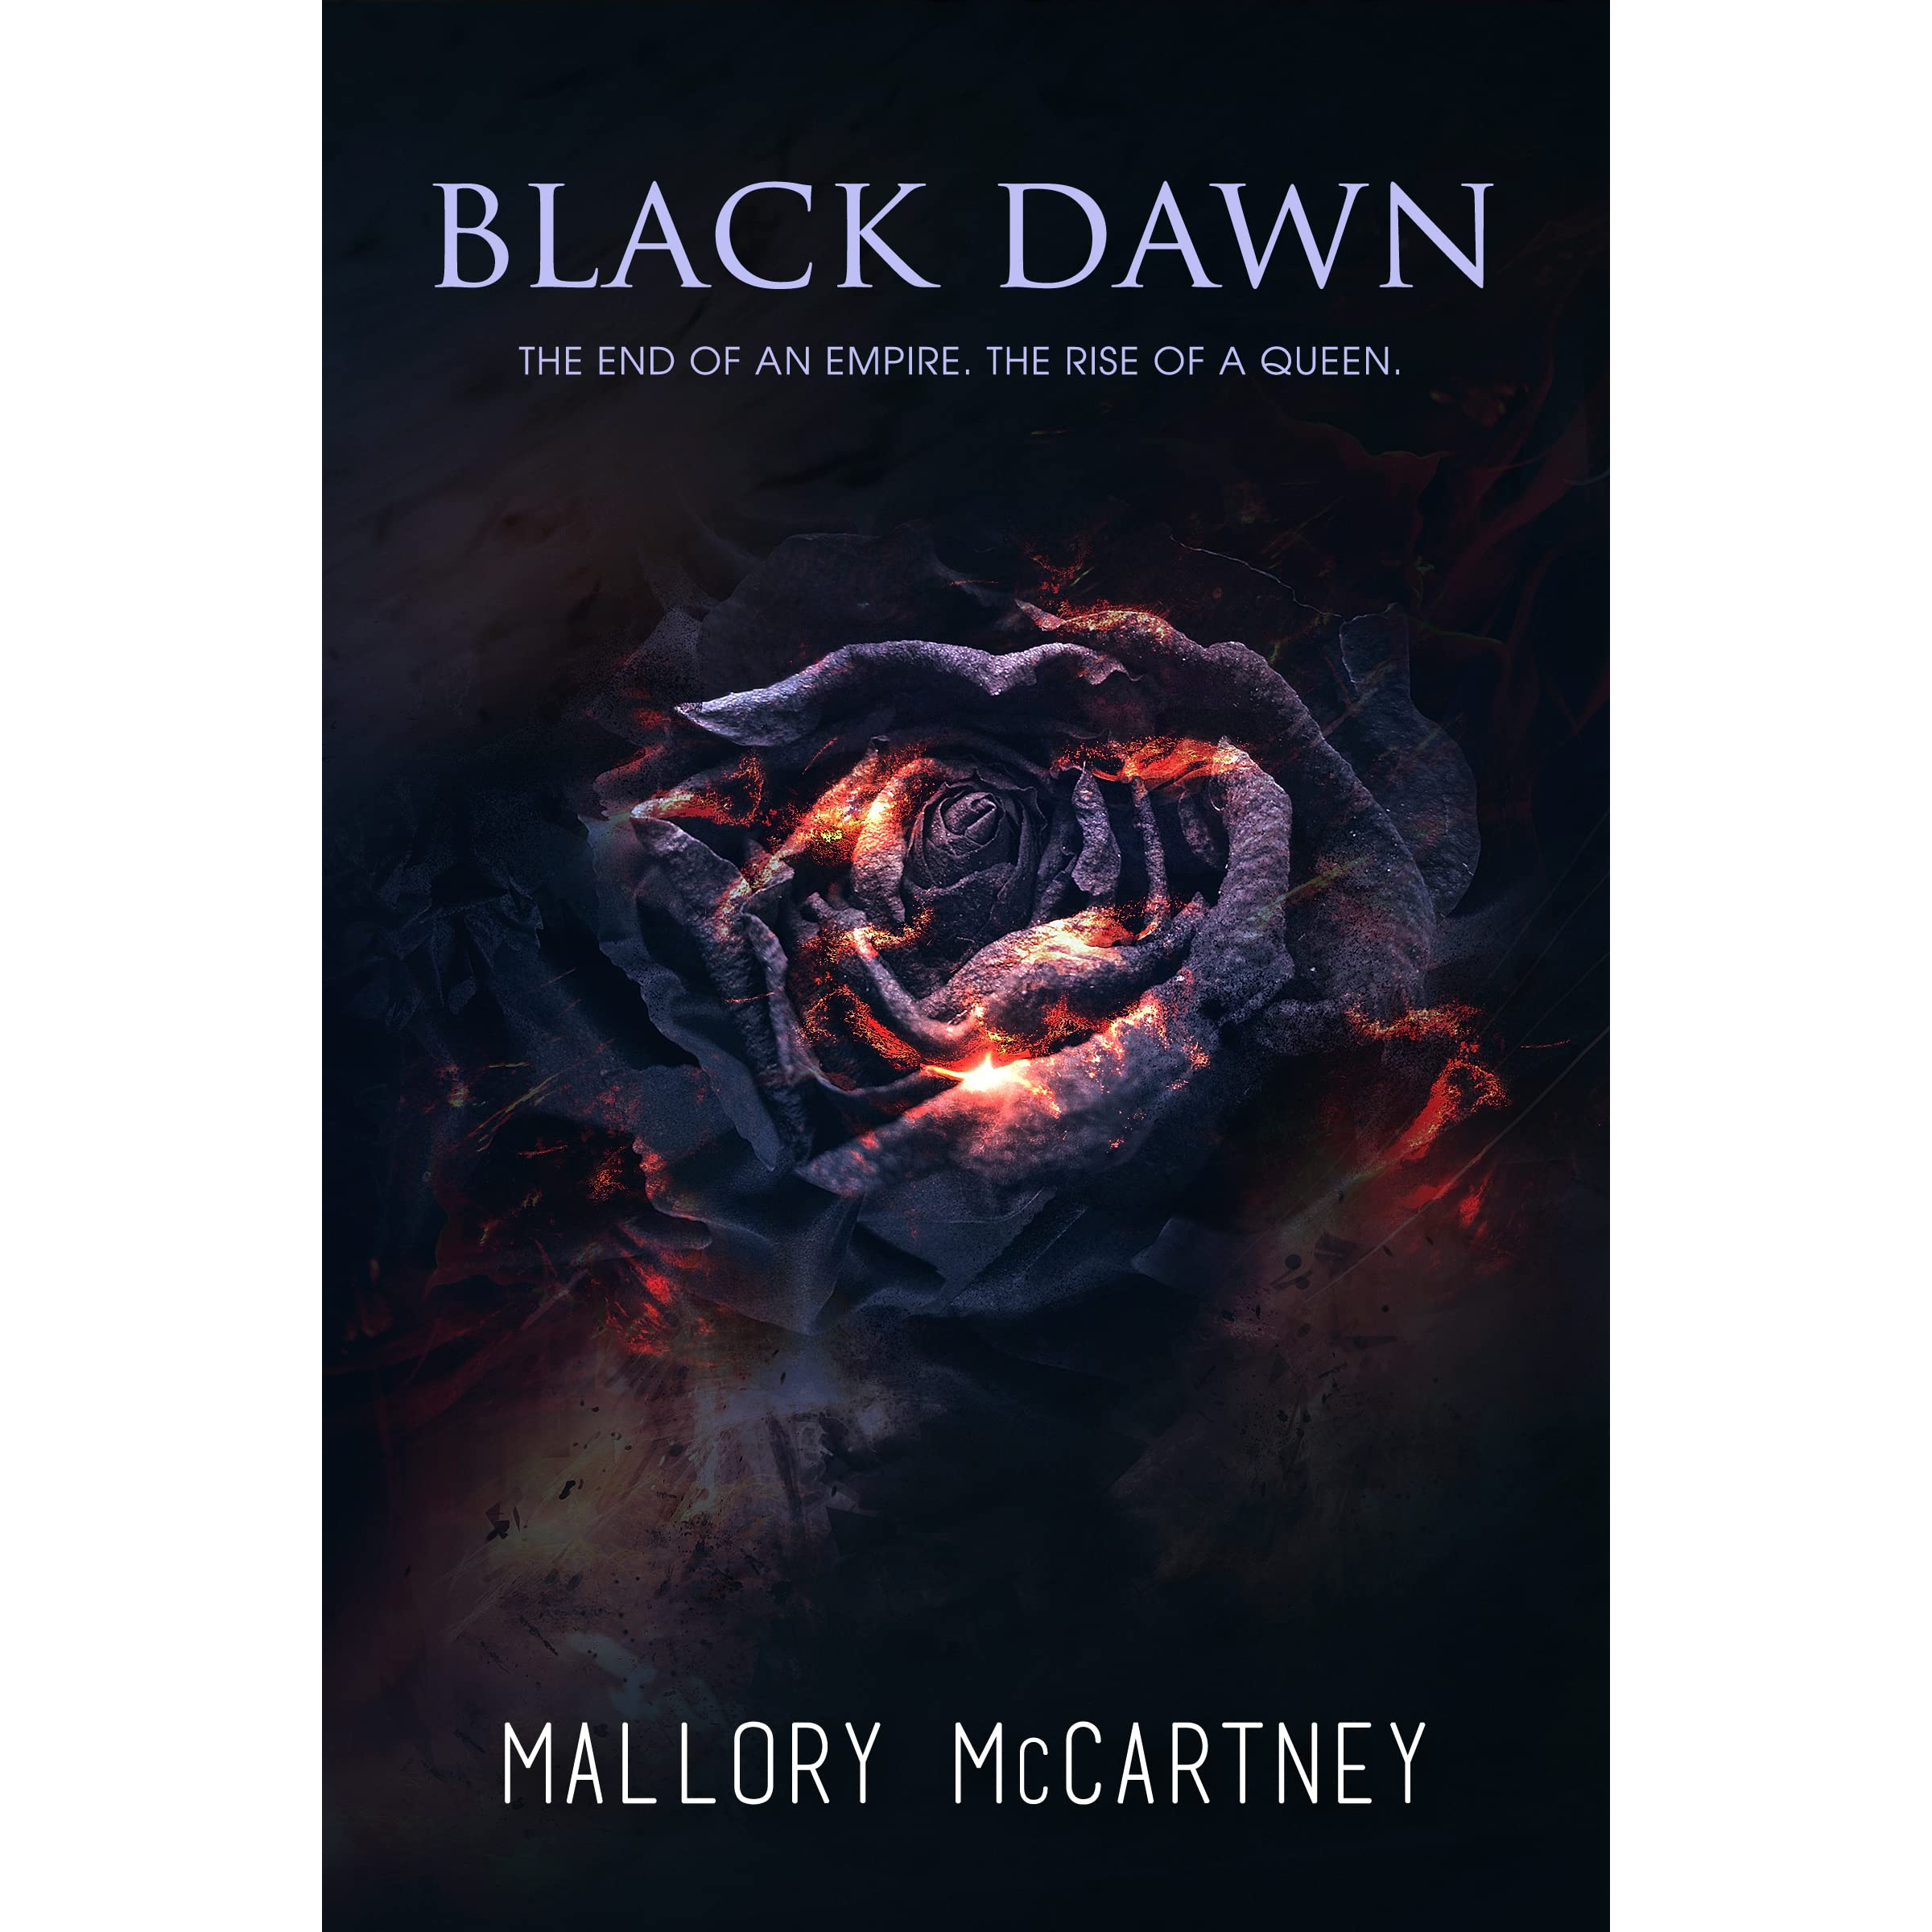 Image result for black dawn by mallory mccartney